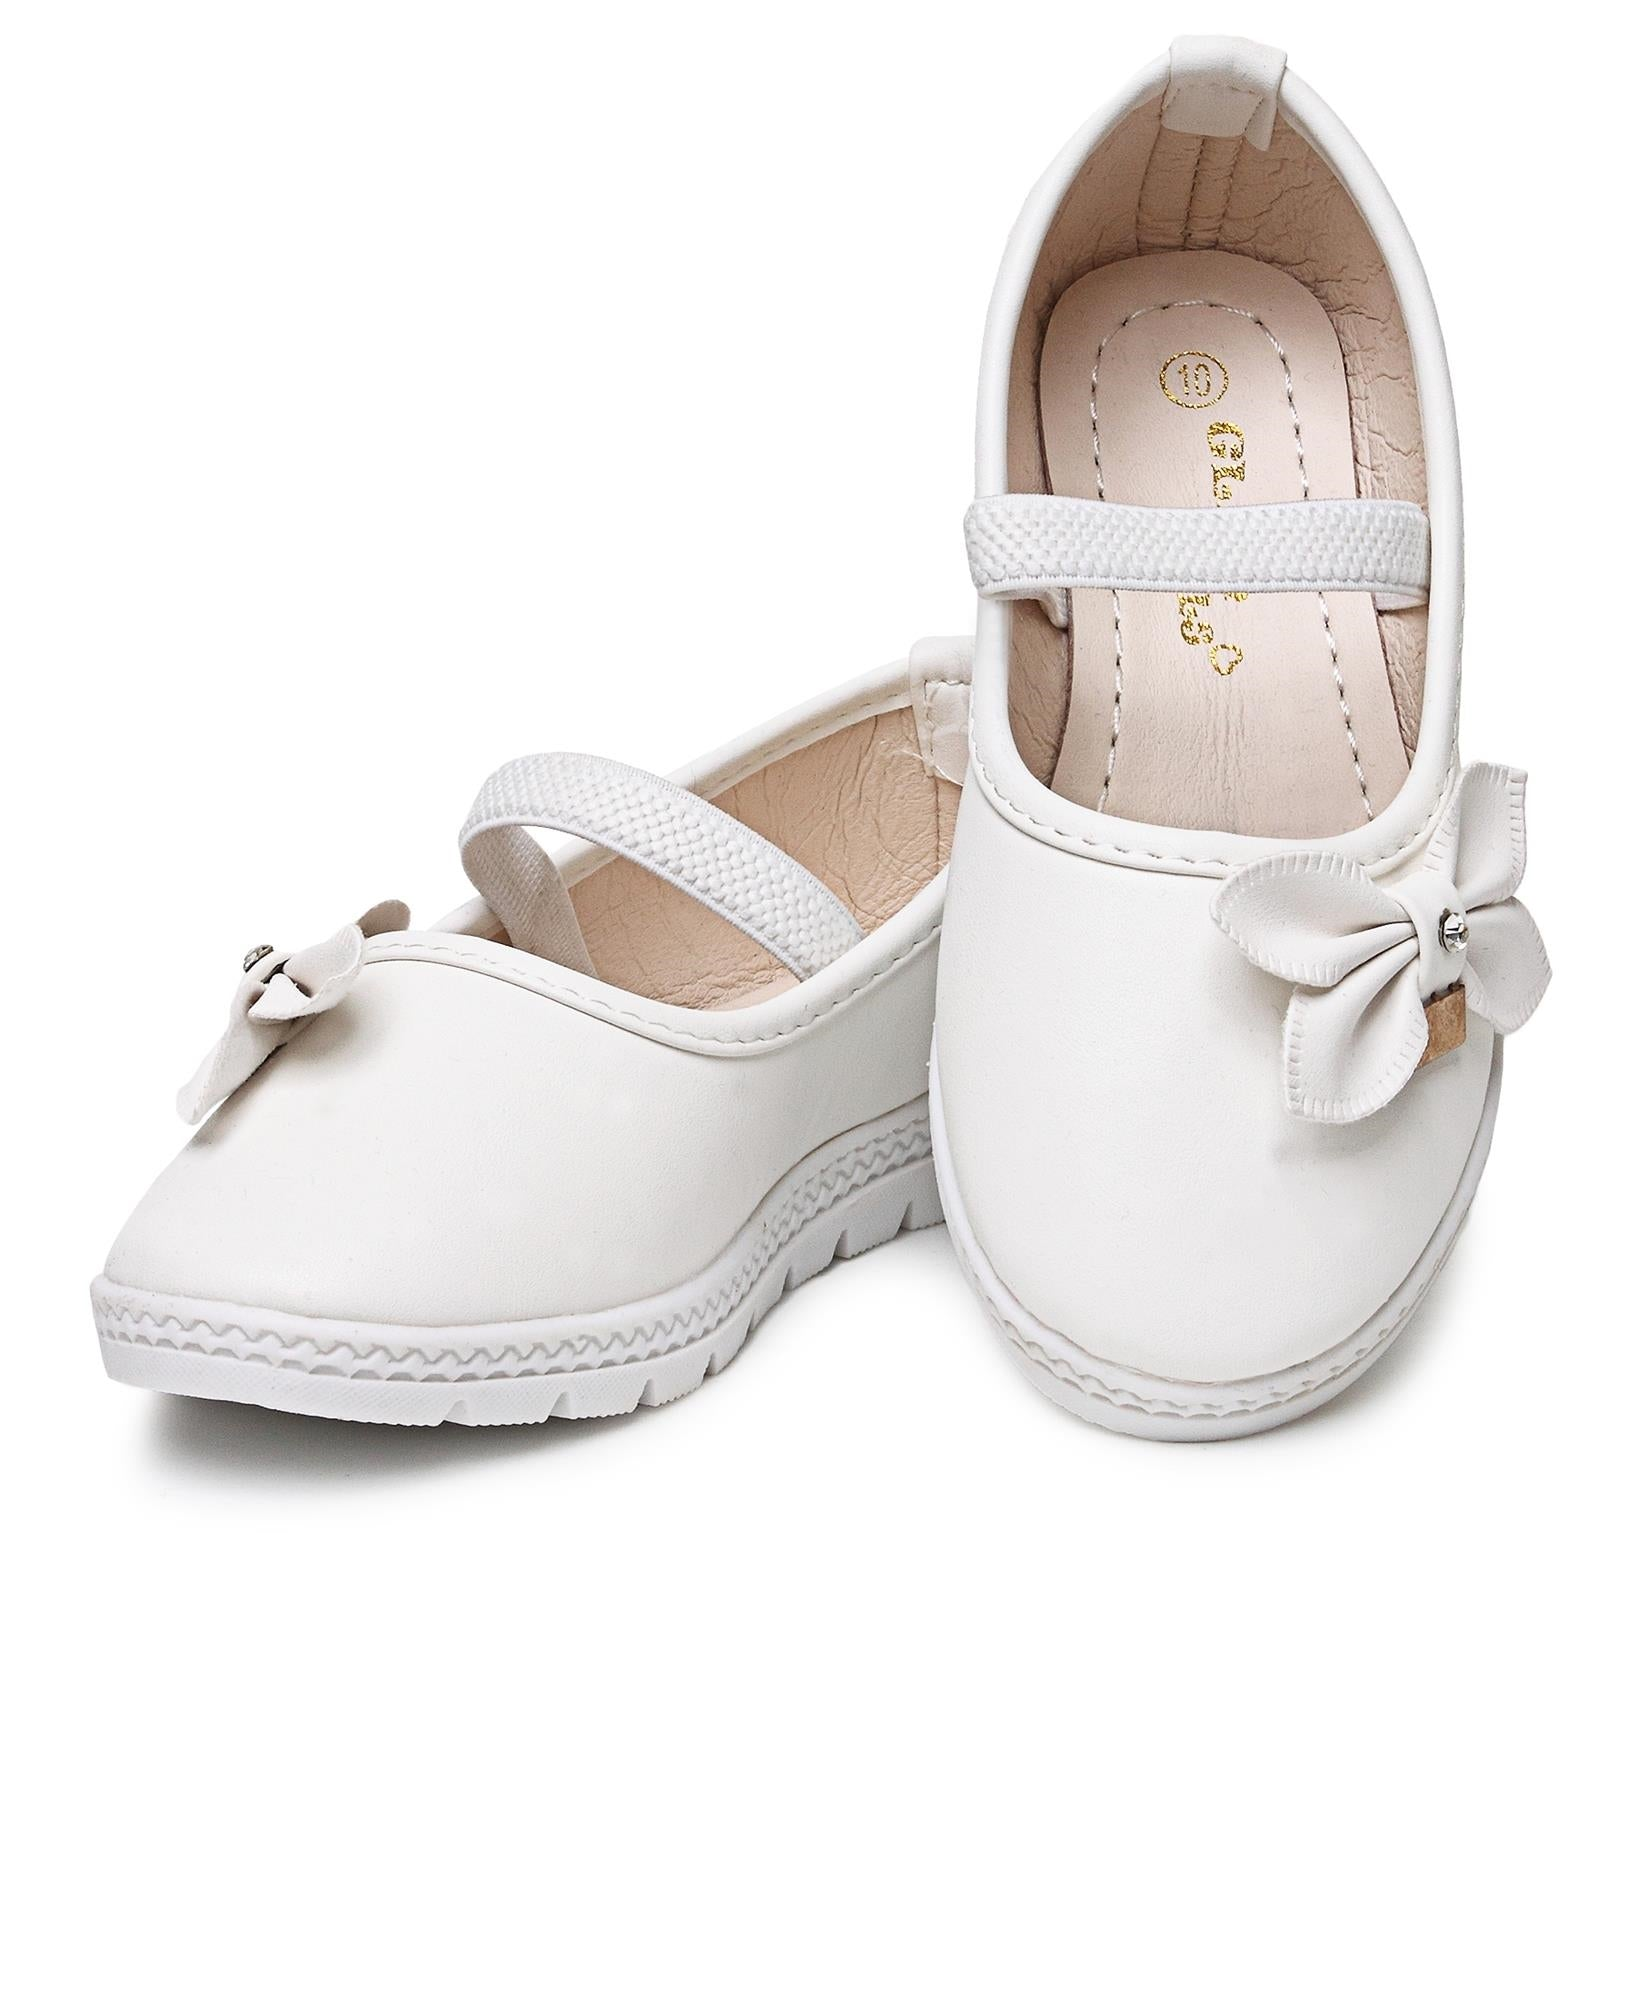 Infants Pumps - White